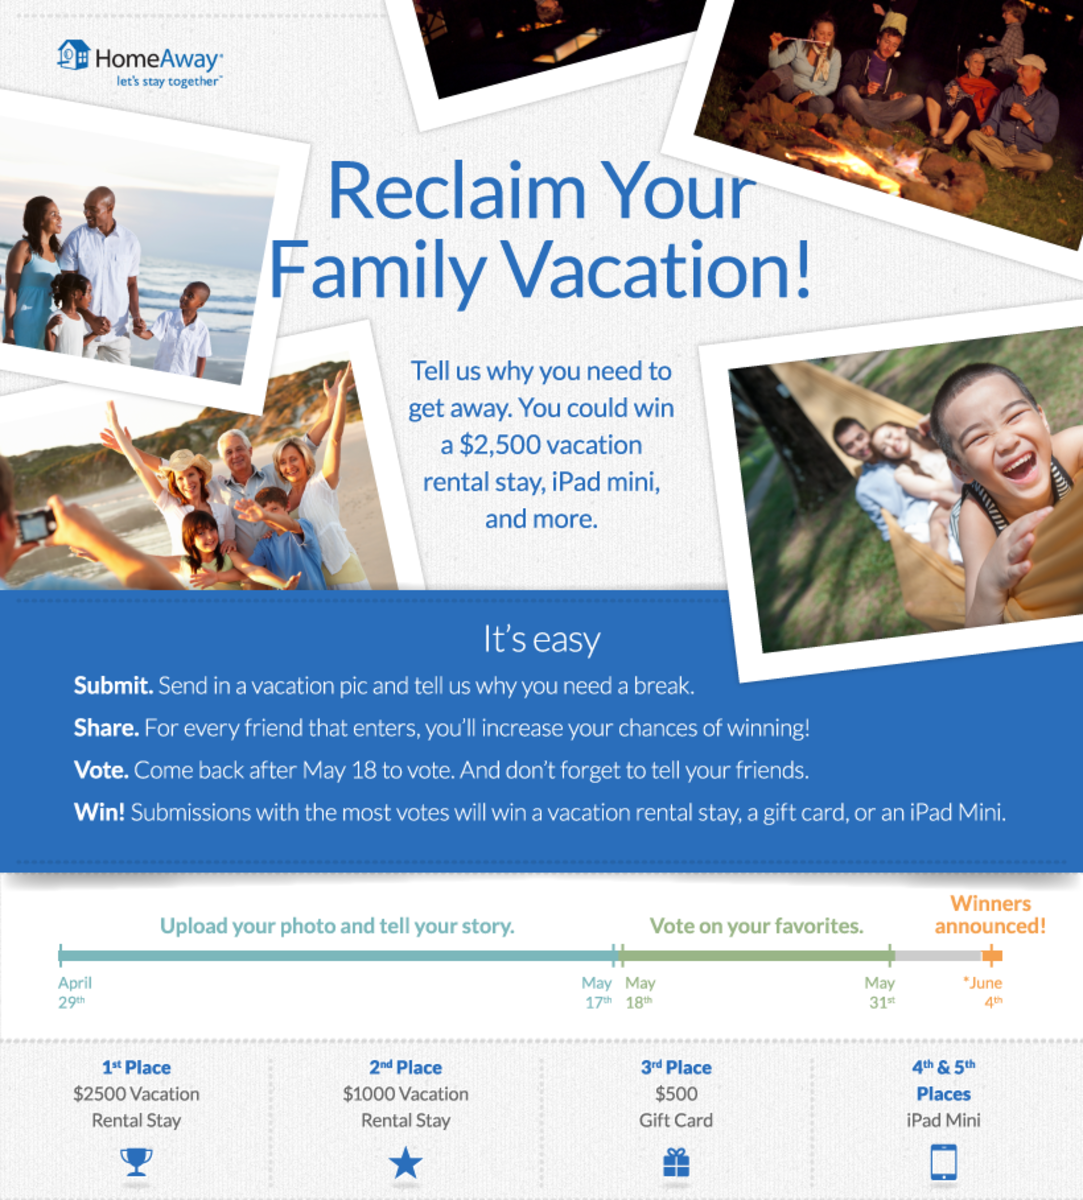 homeaway reclaim your vacation